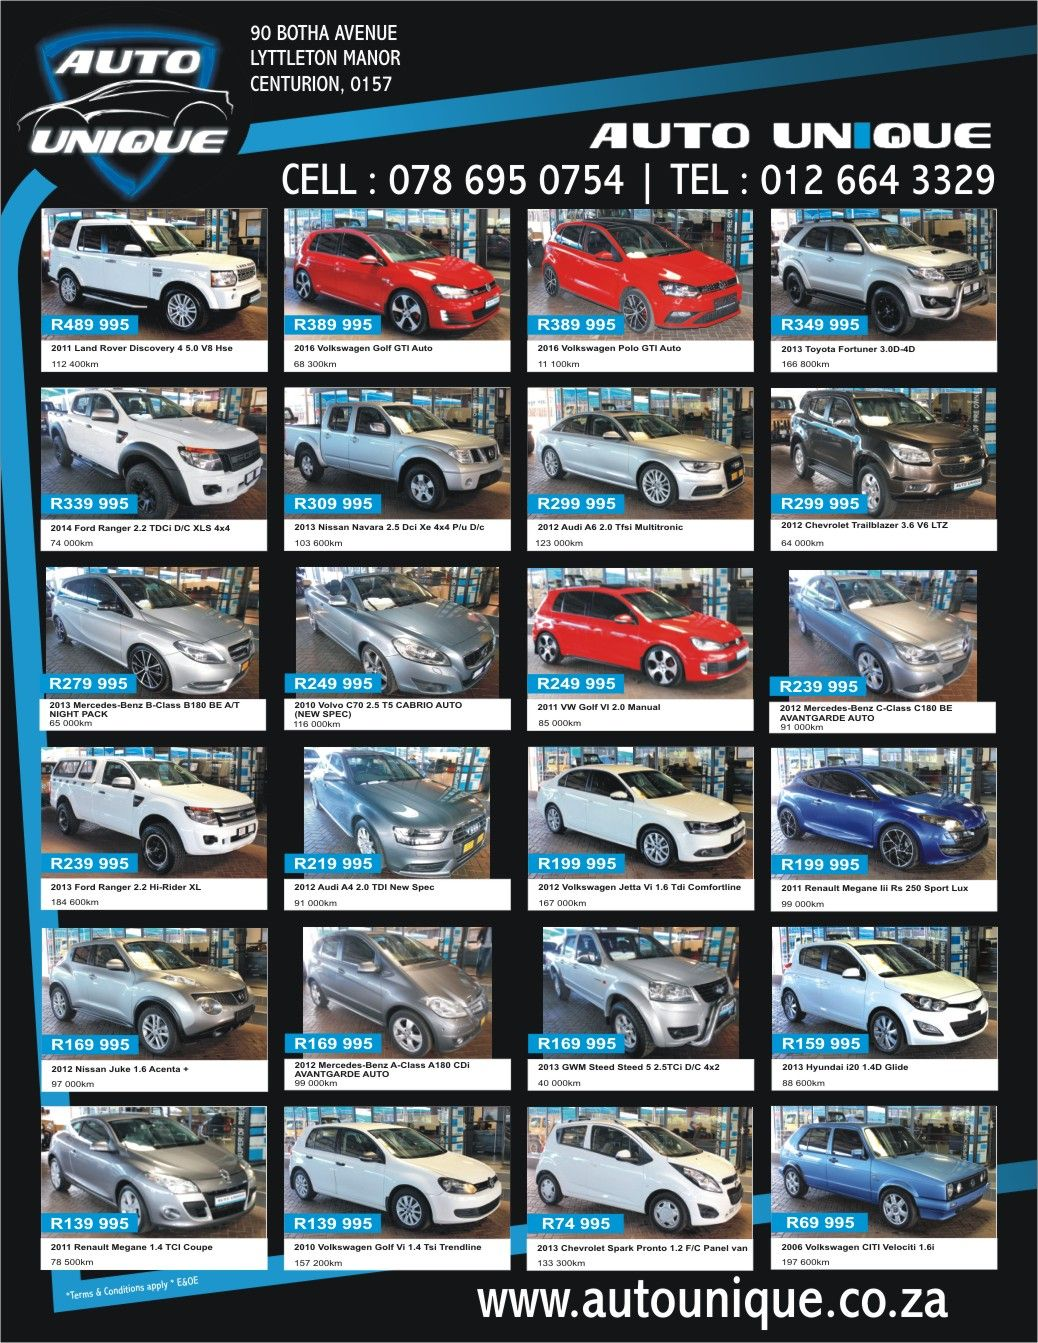 Great deals on offer this month Auto Unique! Don't